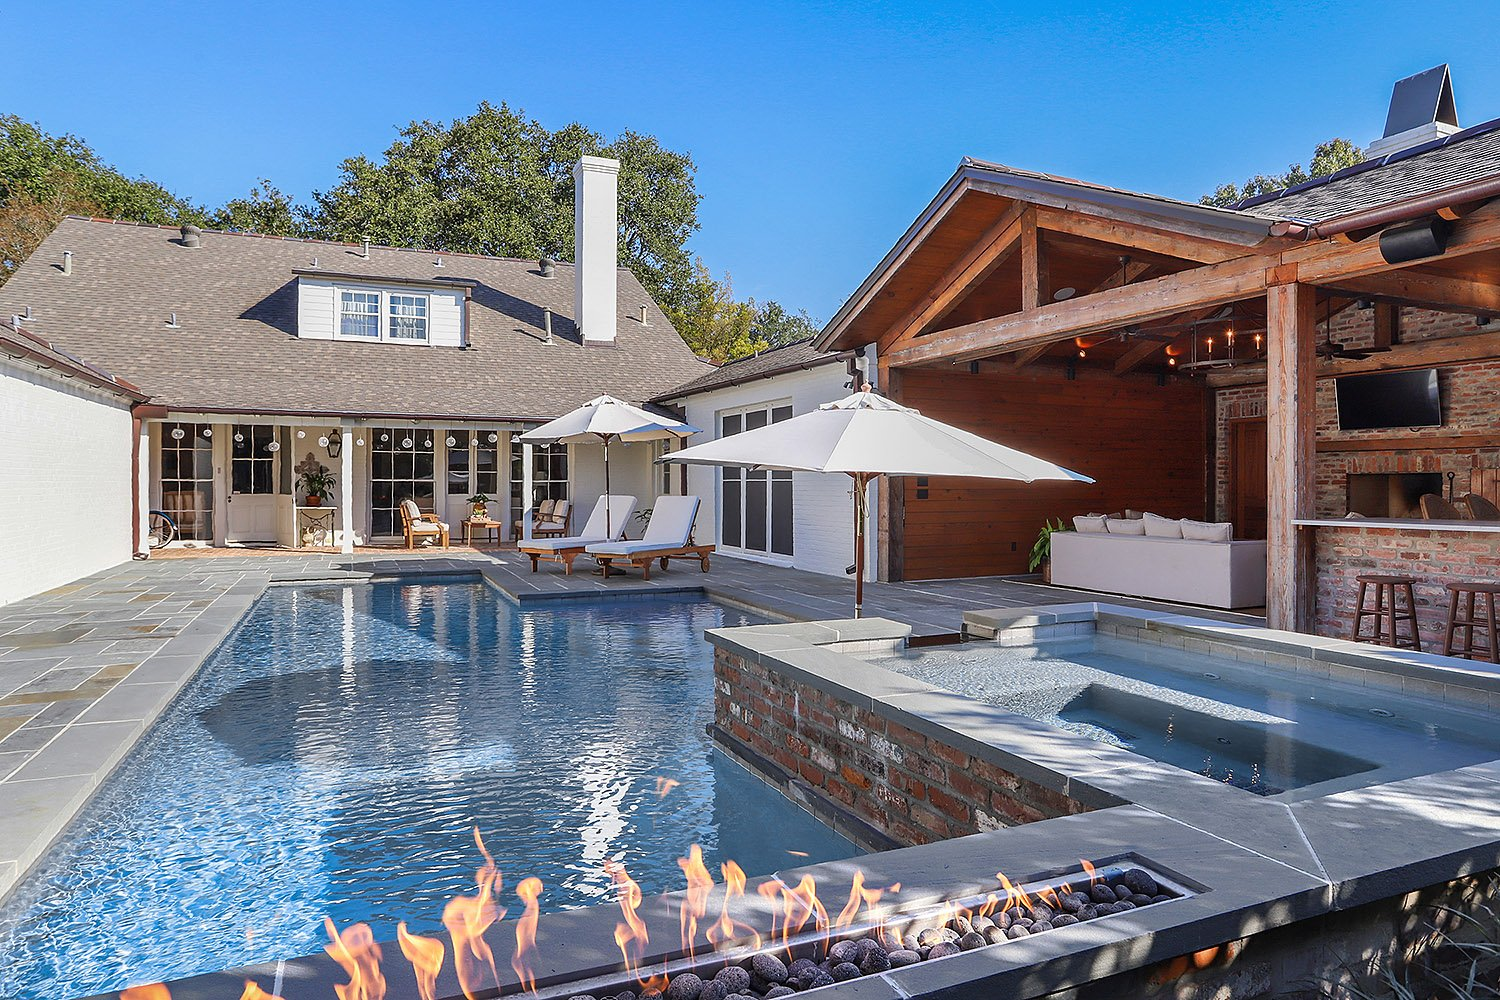 Baton Rouge Pool with Fire Feature